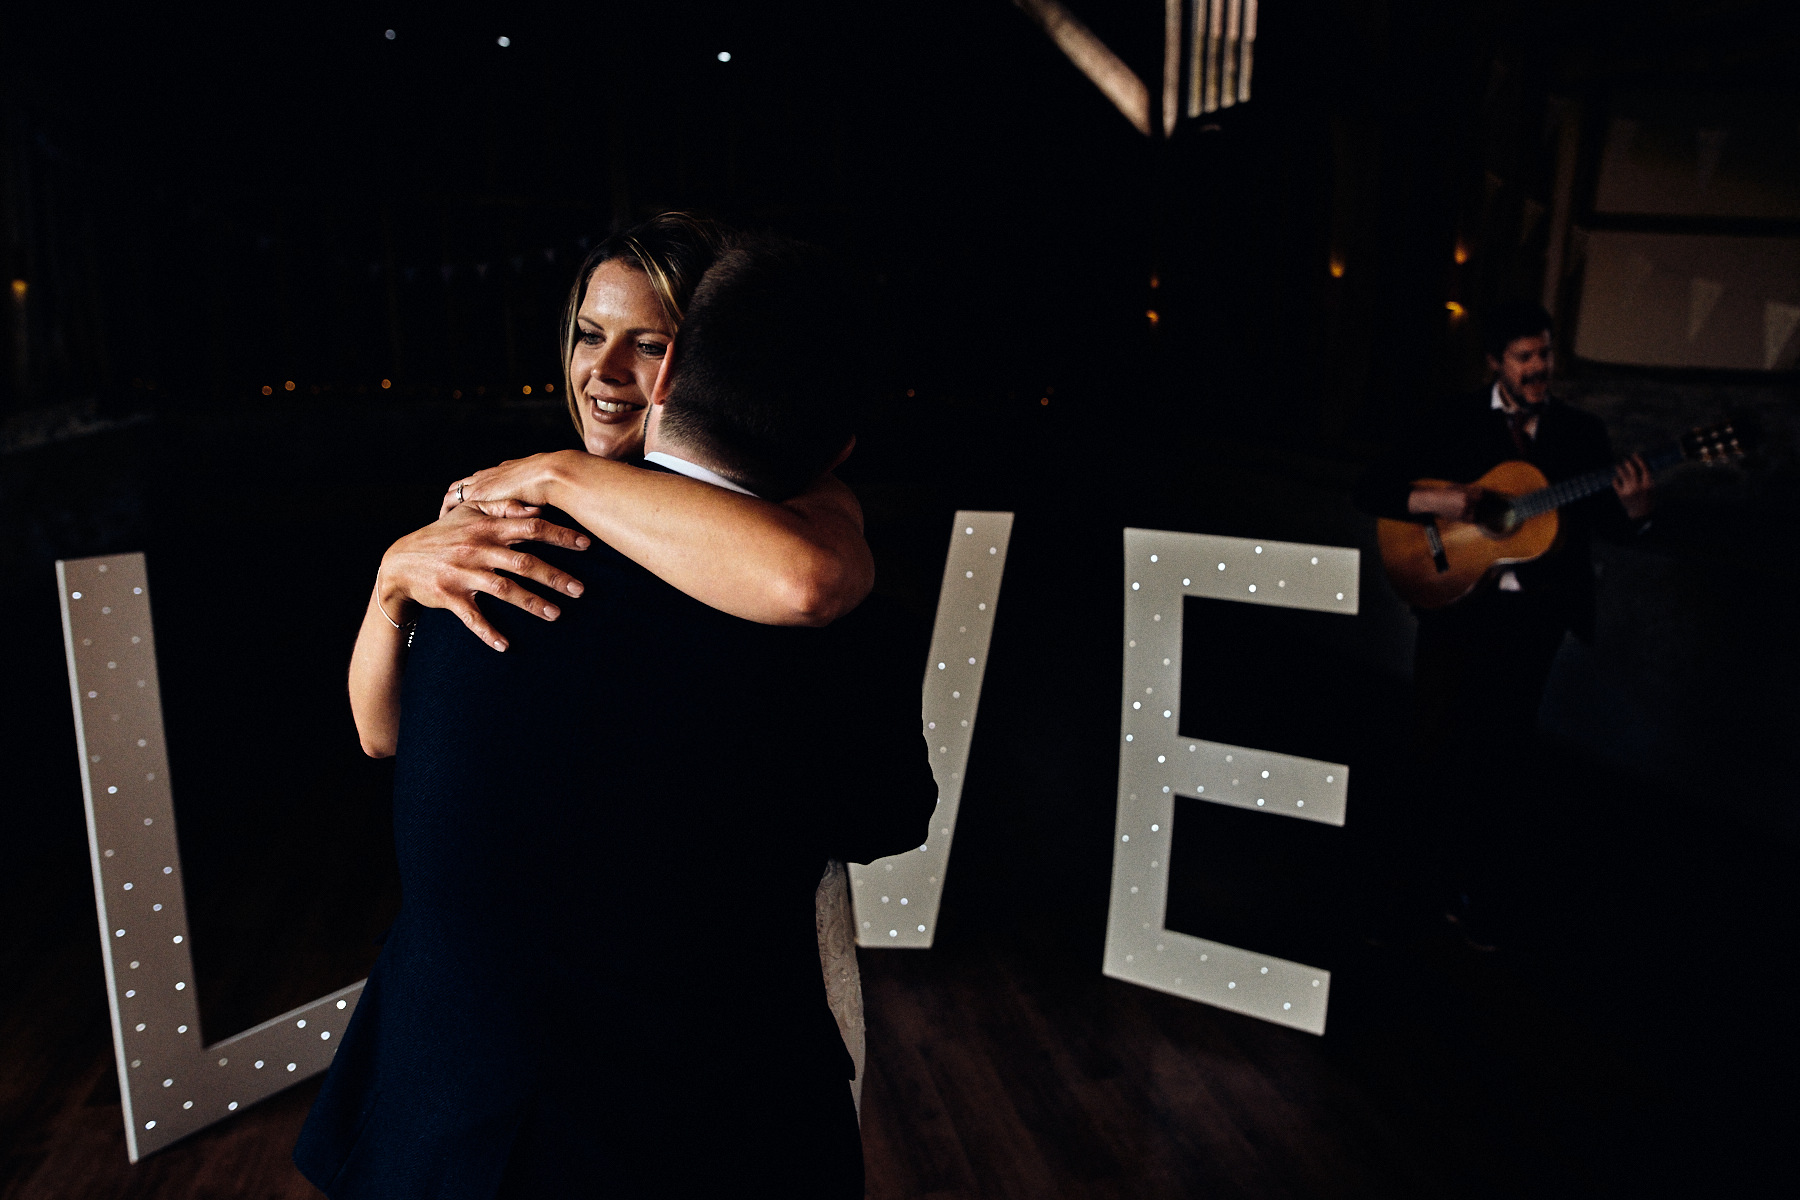 Bride and groom first dance at Great Barn wedding Rolvenden in Kent